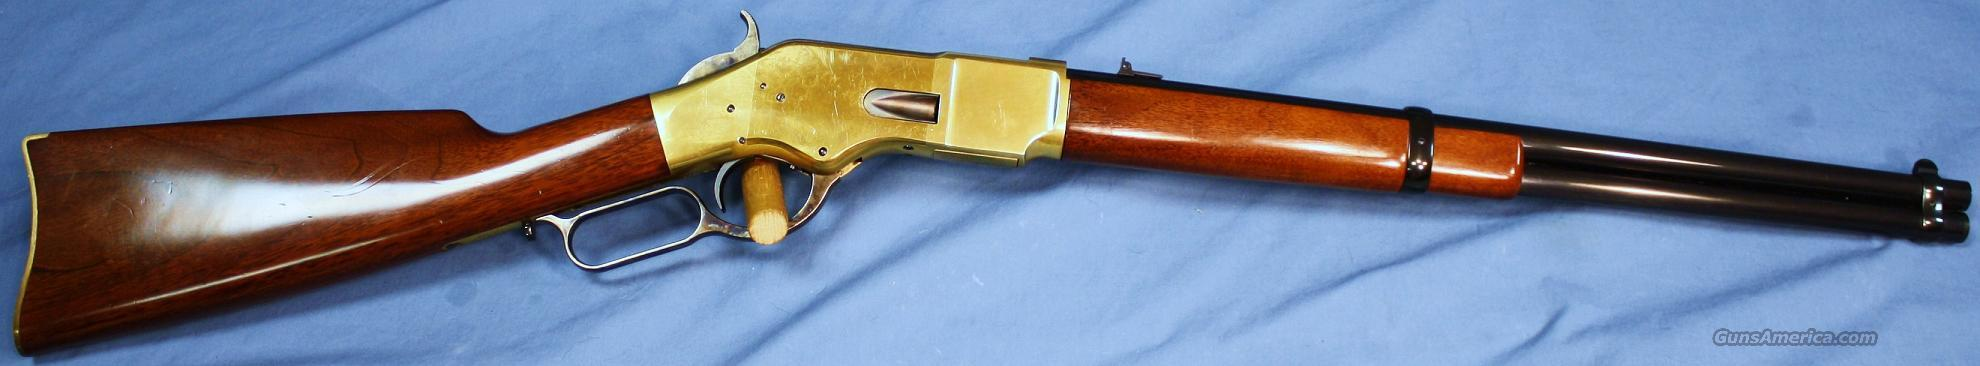 Uberti Model 1866 Yellowboy Lever Action Carbine .44-40  Guns > Rifles > Uberti Rifles > Lever Action